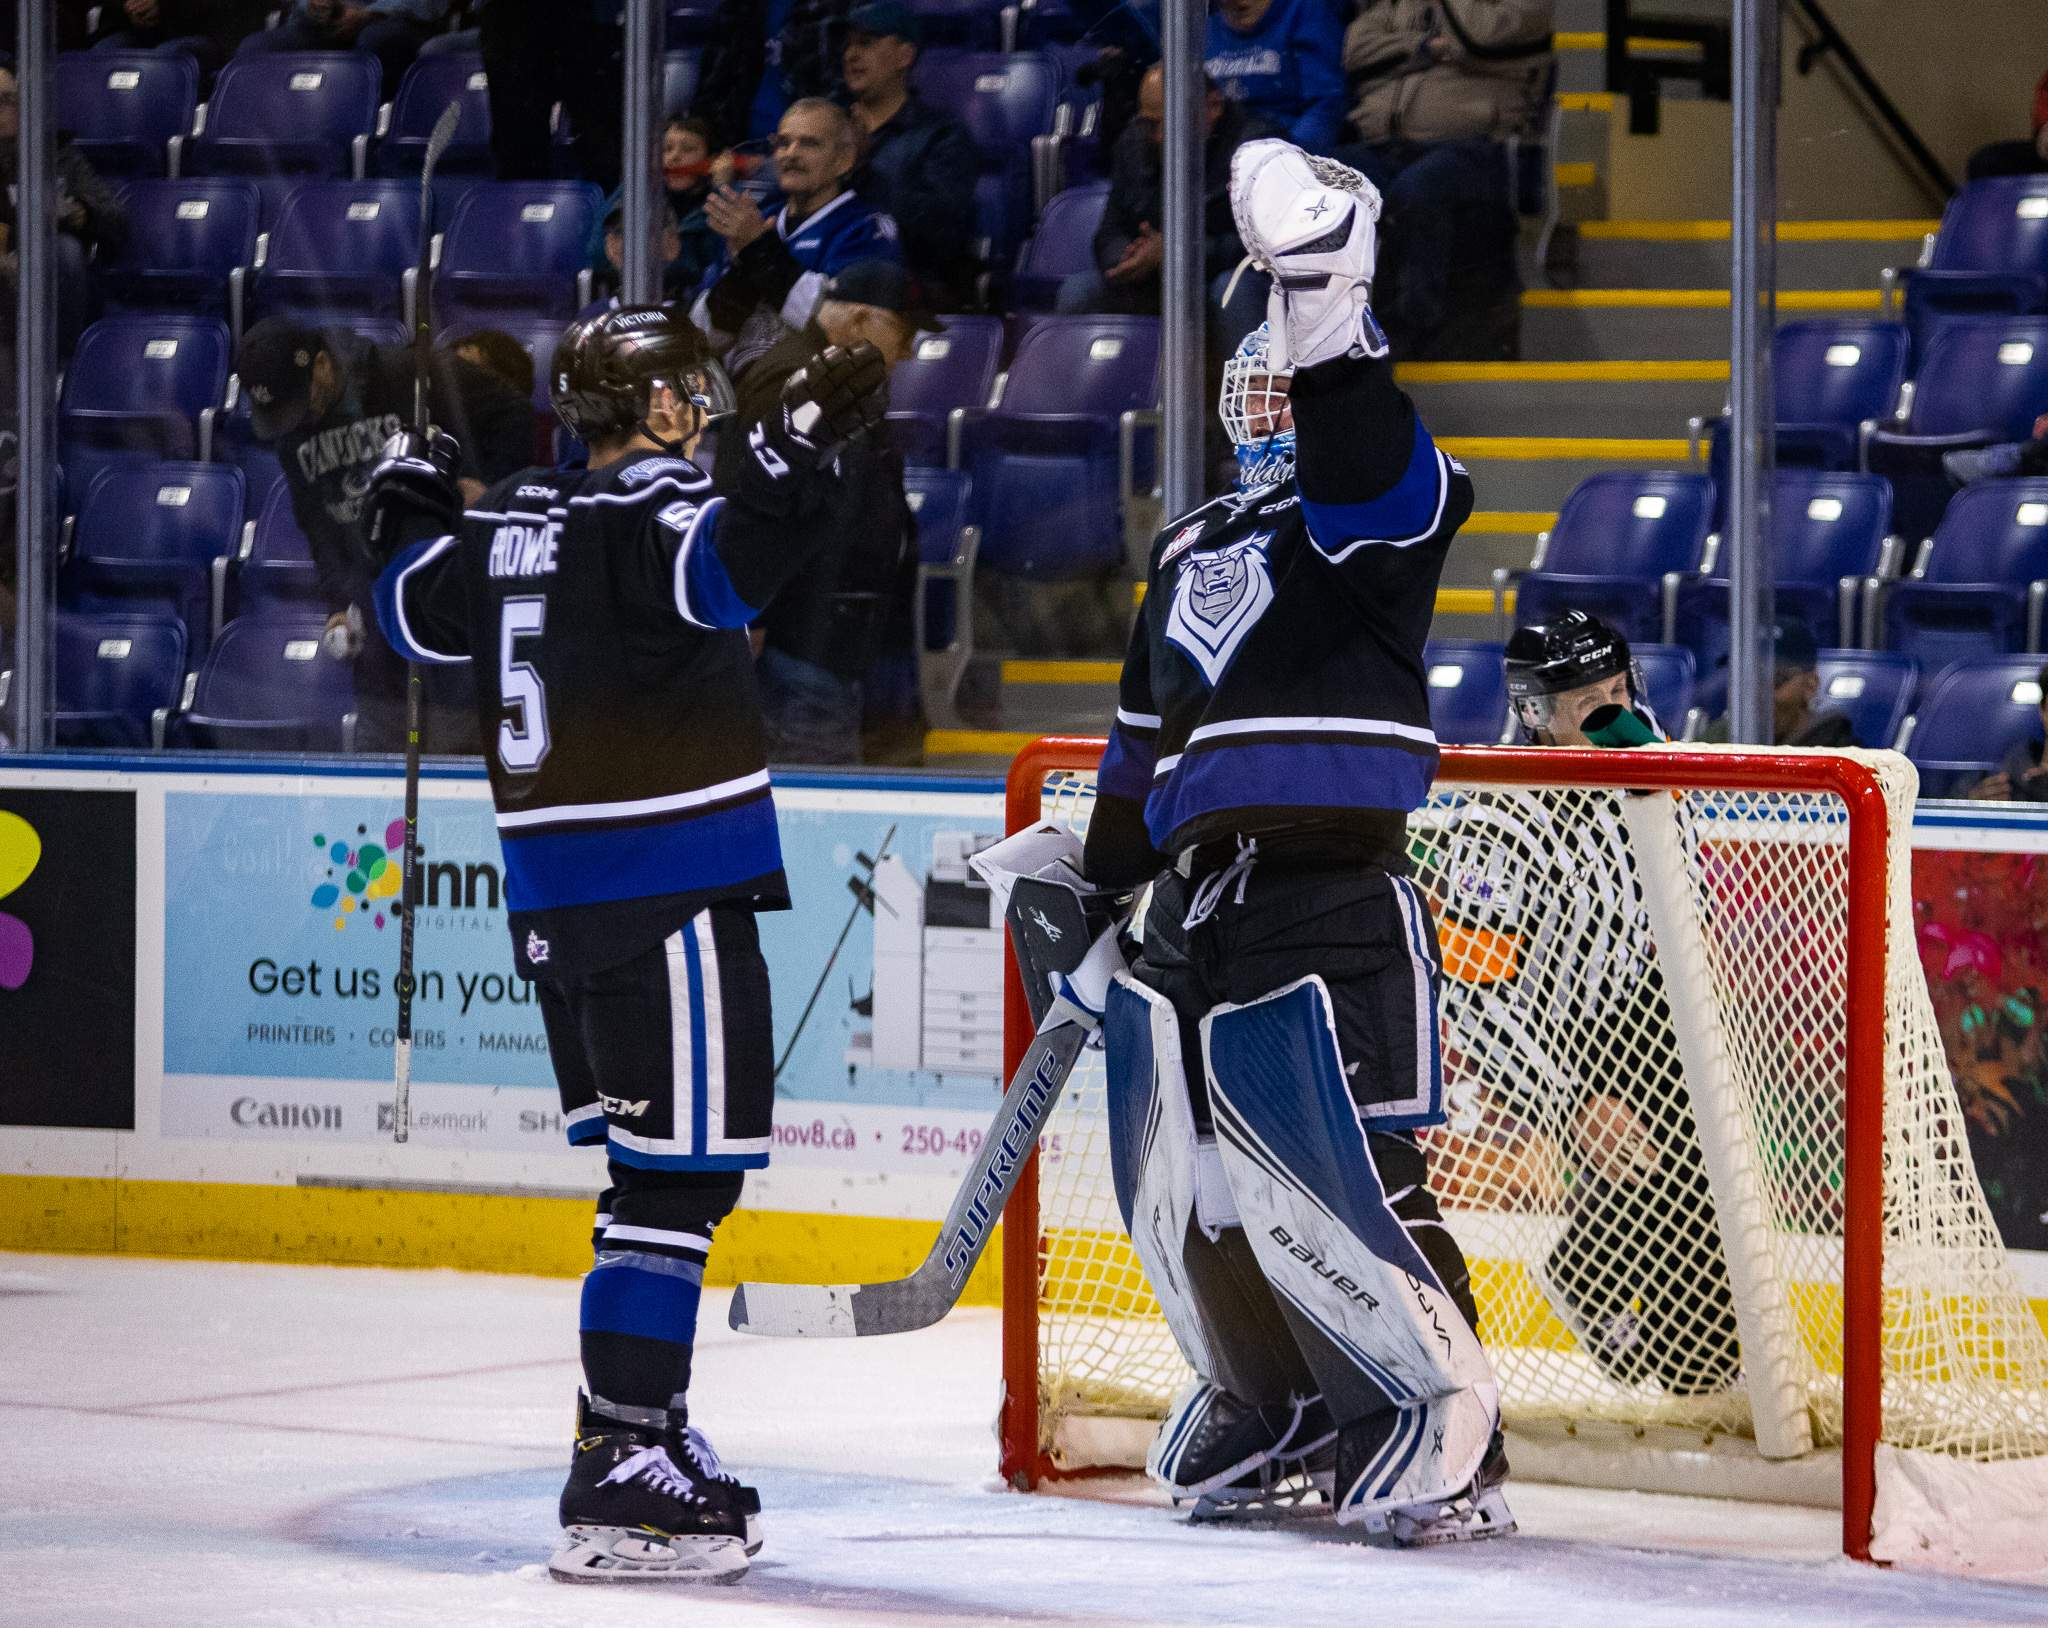 Goaltender Brock Gould celebrates after getting his first WHL shutout. Photo by Nathanael Laranjeiras